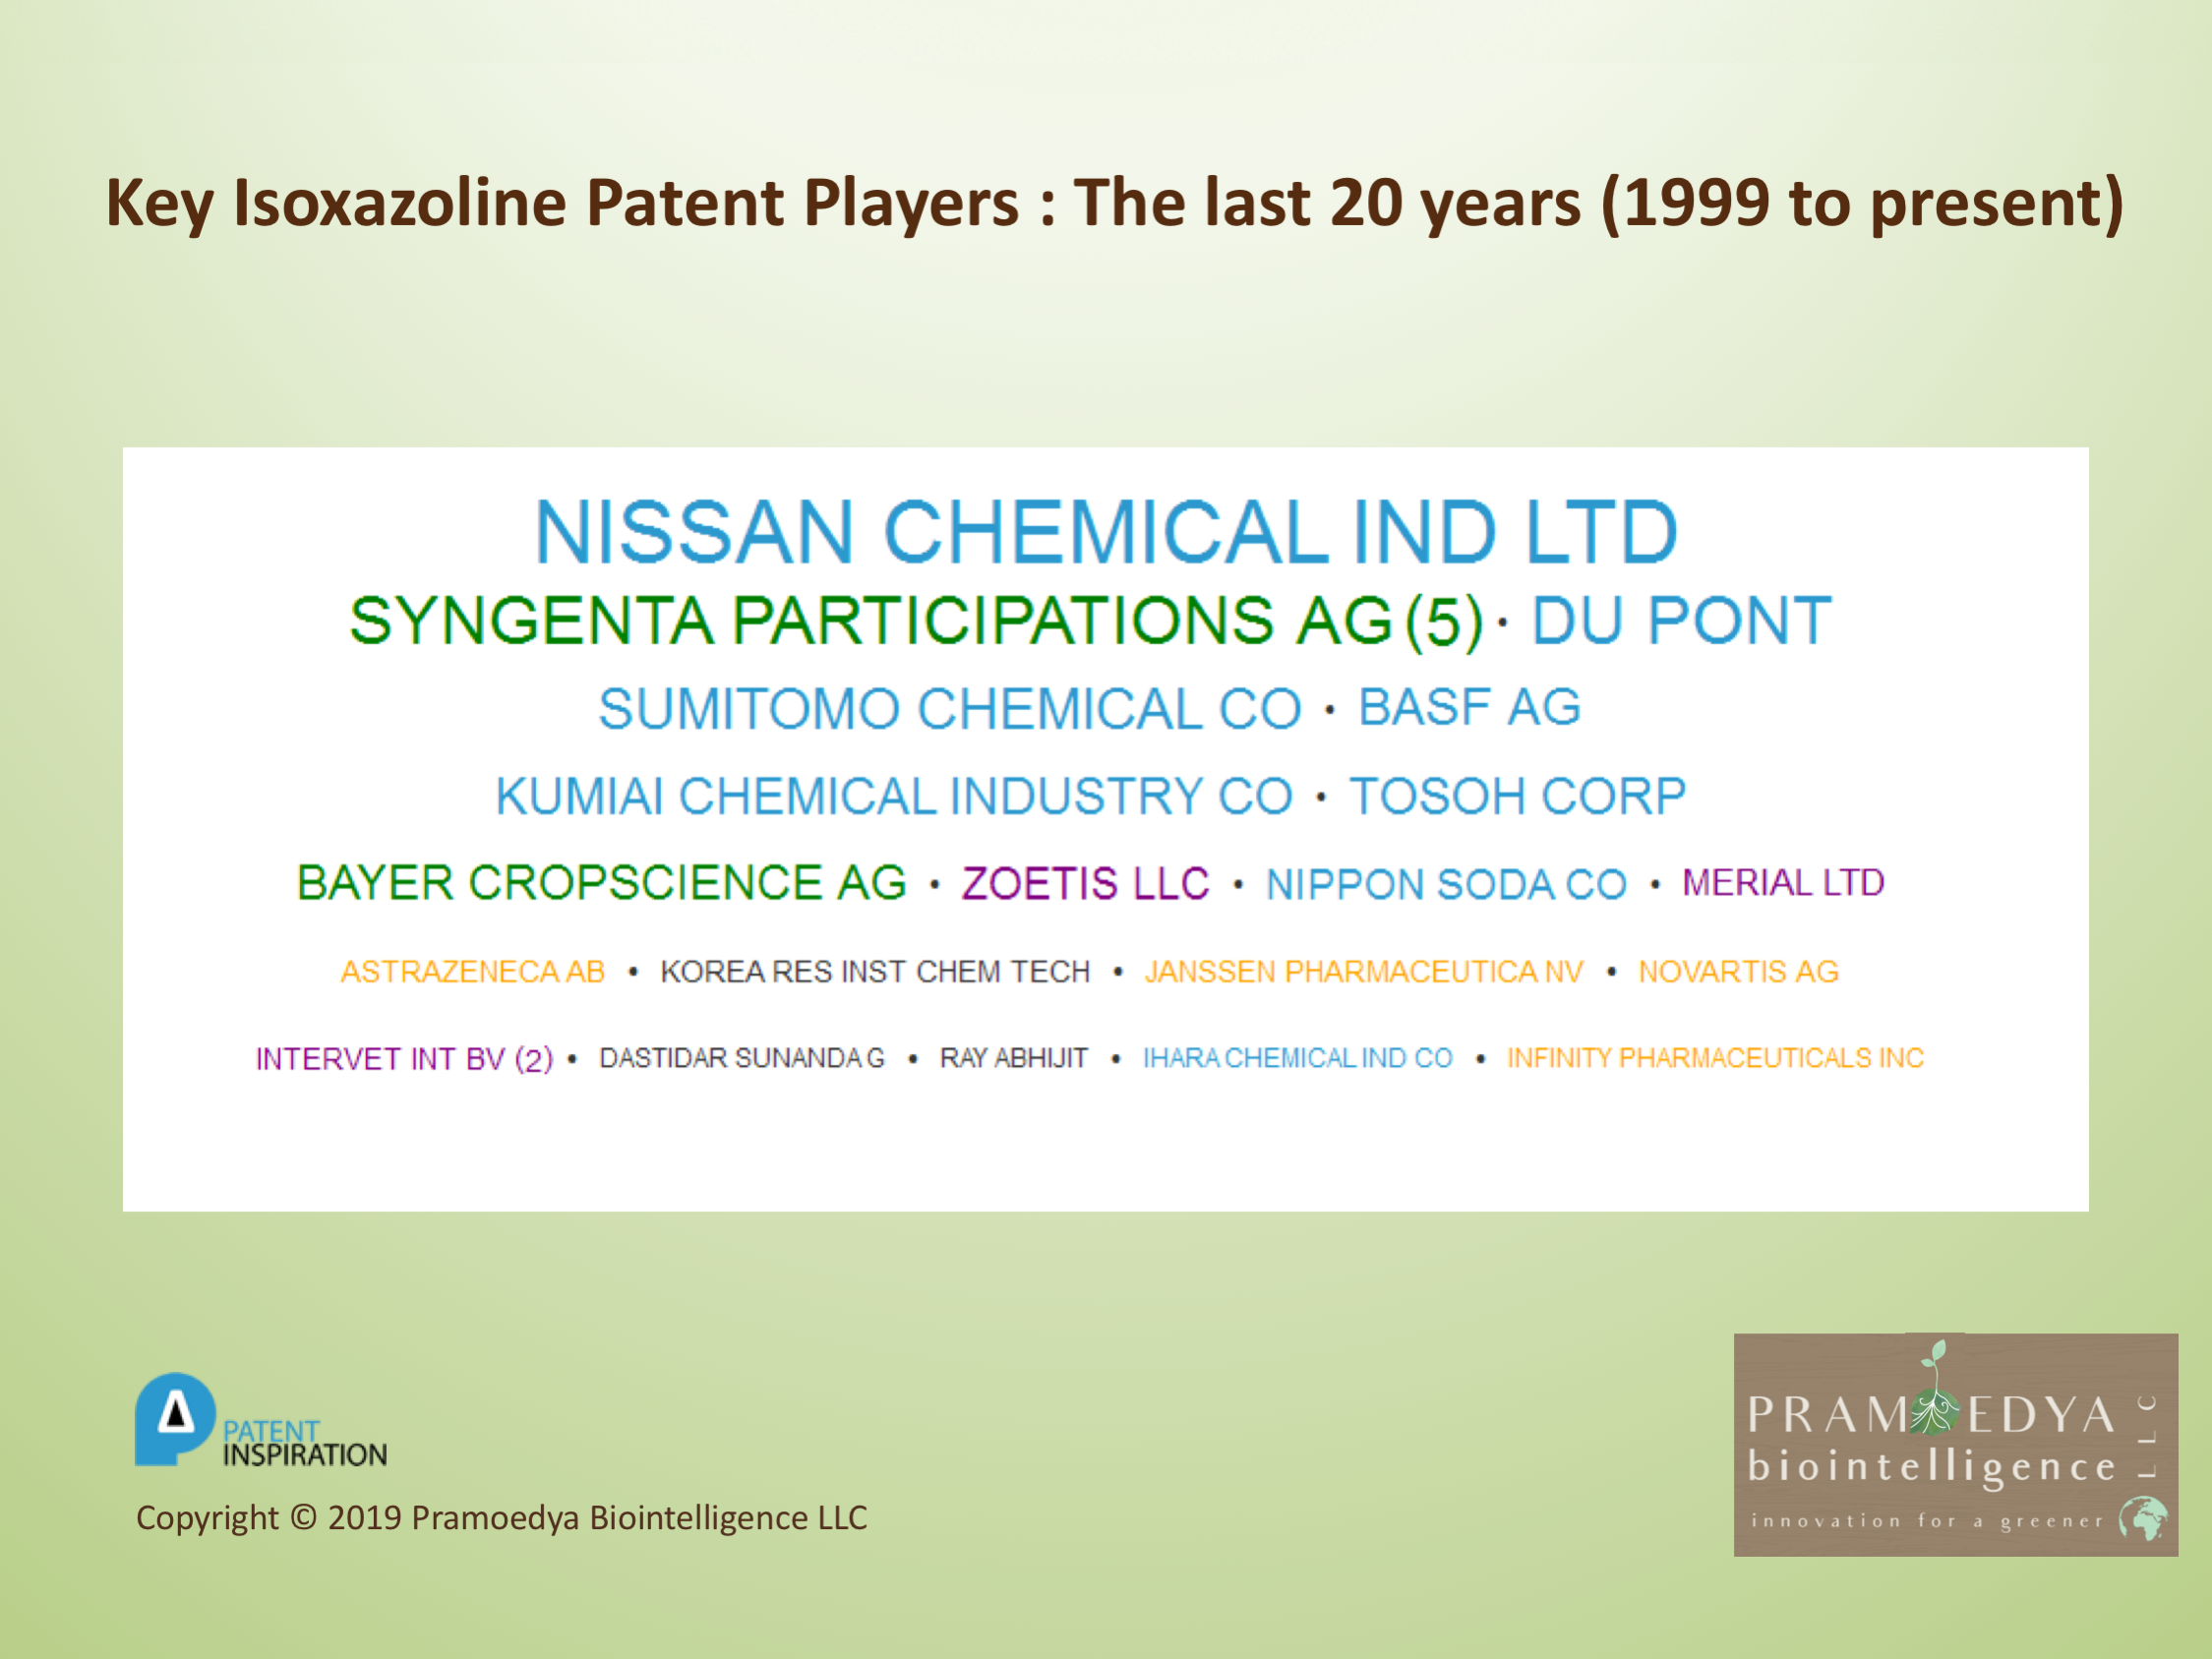 The last 20 years  (1999 to present)  Though the current main commercial application of isoxazolines is focused on animal health, the  key isoxazoline patent players  are from  diverse  industries including  chemical  (eg  Nissan Chemical  and  Du Pont ),  agriculture  (eg S yngenta  and  Bayer Cropscience ) and  pharmaceutical  (eg  Novartis  and  Janssen ) companies, with the chemical companies having the largest isoxazoline patent portfolios. The Isoxazoline-relevant  veterinary sciences  companies (eg  Zoetis ,  Merial and Intervet ) are also on the key player list, but with smaller isoxazoline patent portfolios.